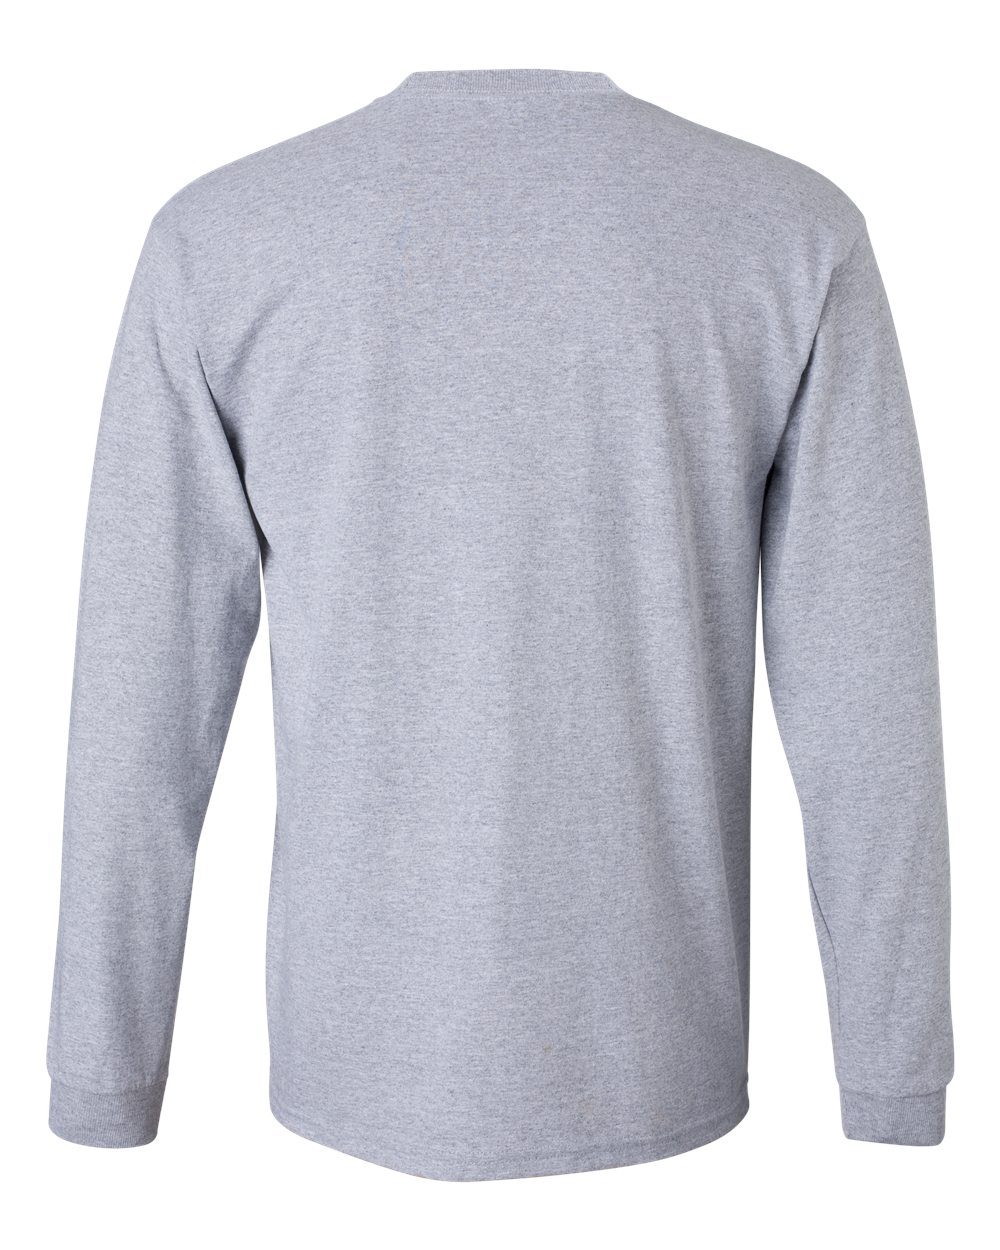 Gildan-Men-039-s-Ultra-Cotton-6-oz-Long-Sleeve-T-Shirt-G240-S-5XL thumbnail 104